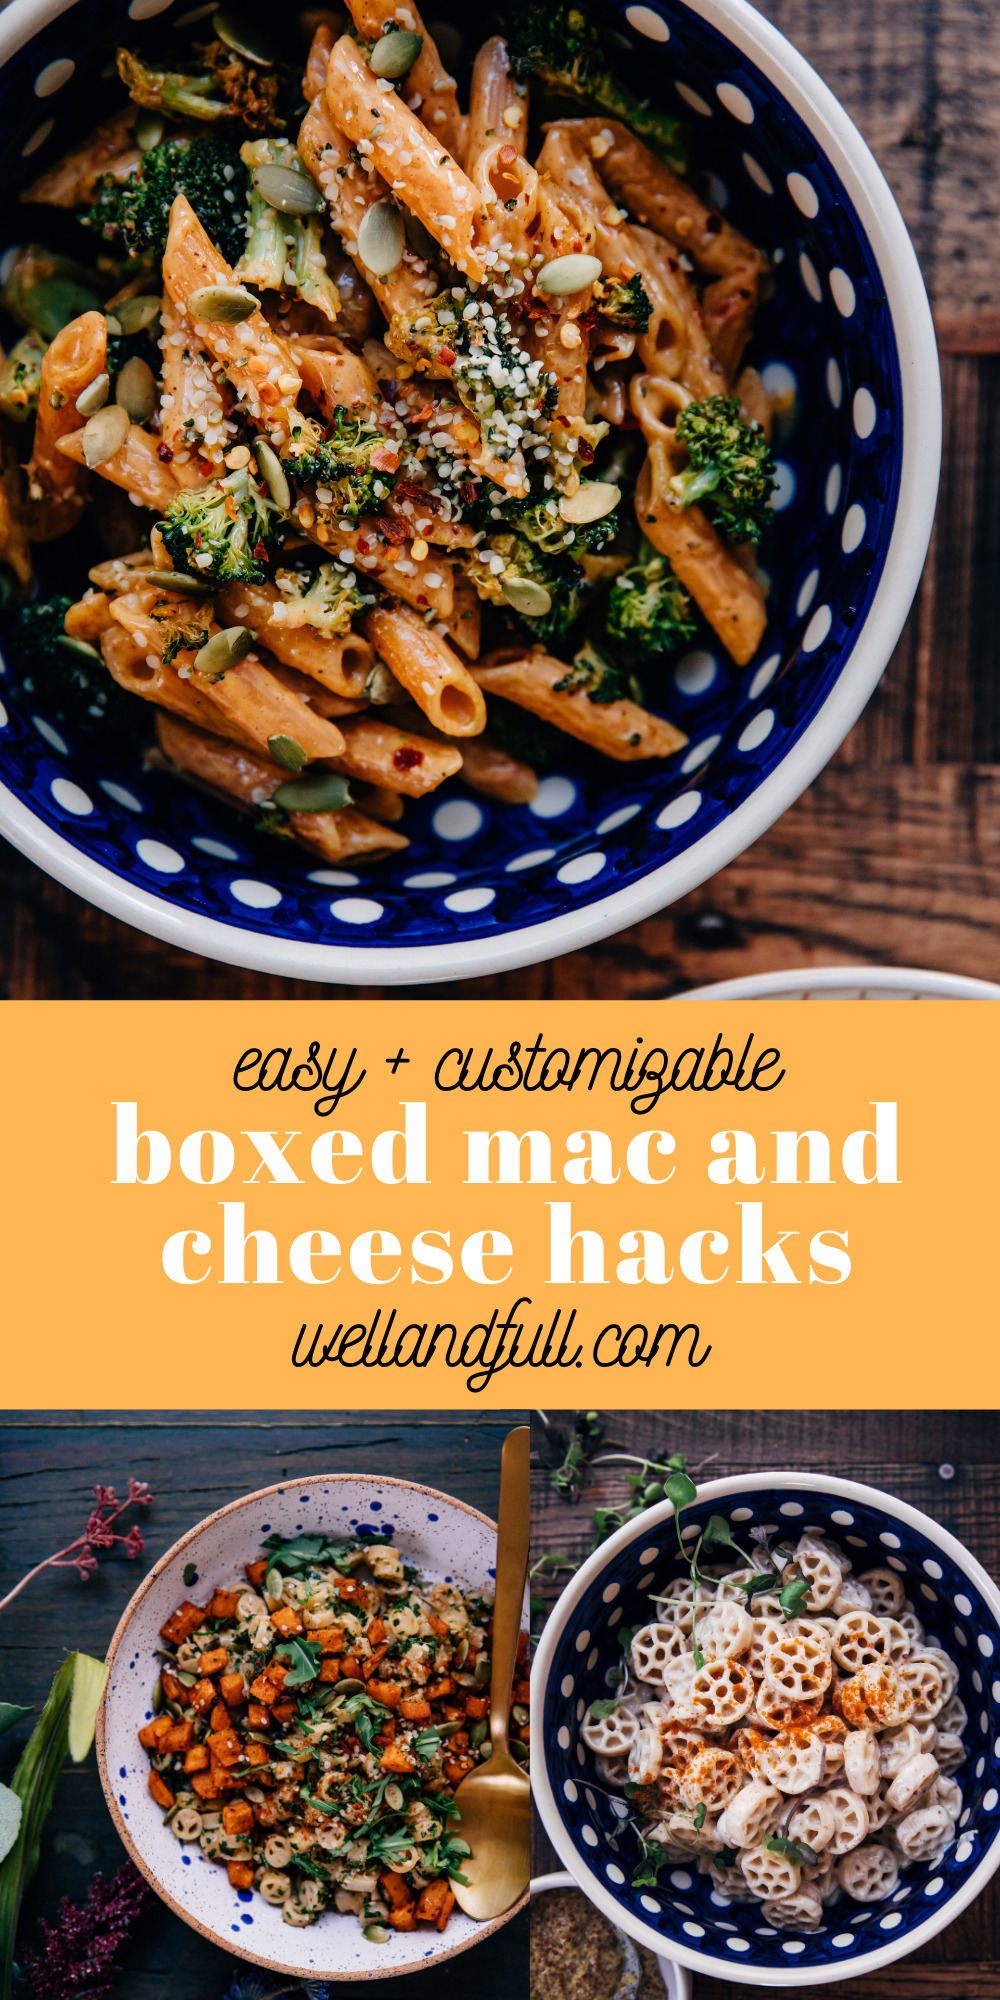 Boxed Mac and Cheese Hacks | Well and Full | #vegetarian #recipe